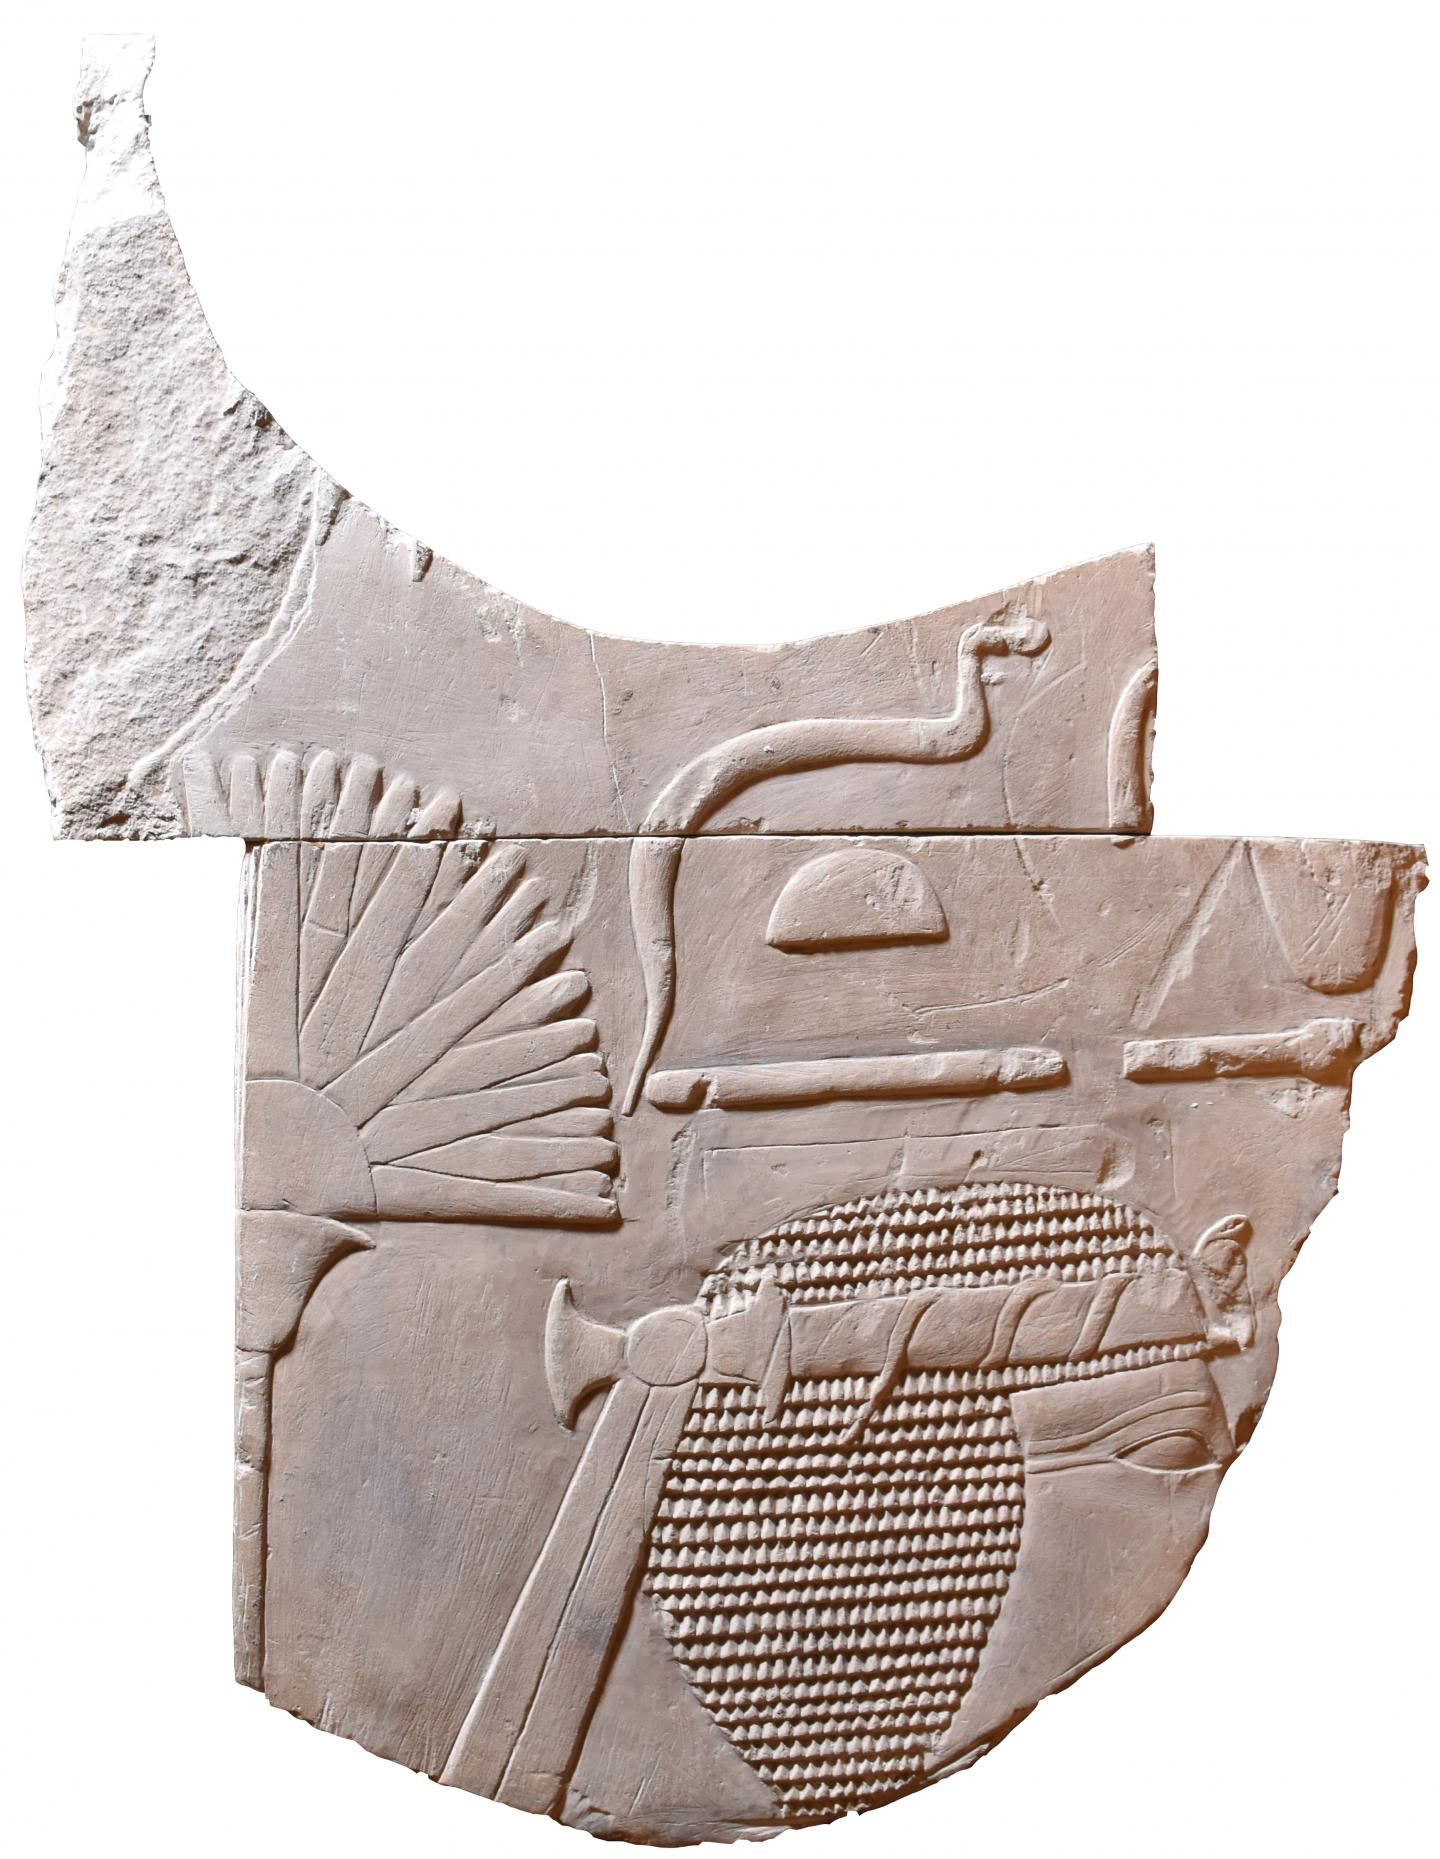 Hatshepsut sculpted relief